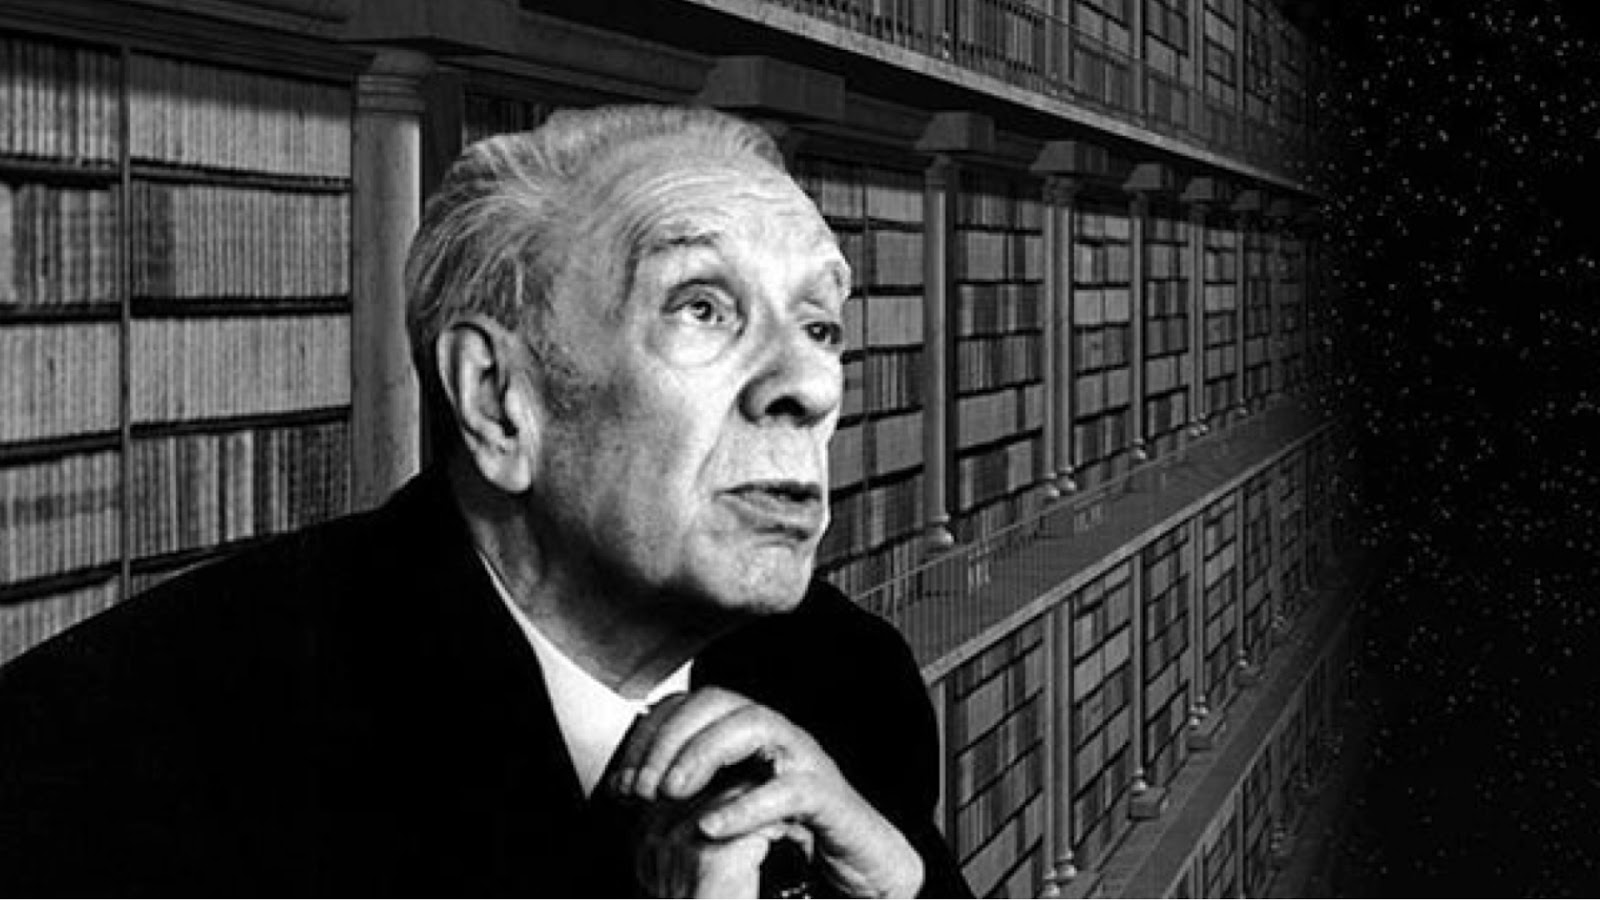 Borges in the Library